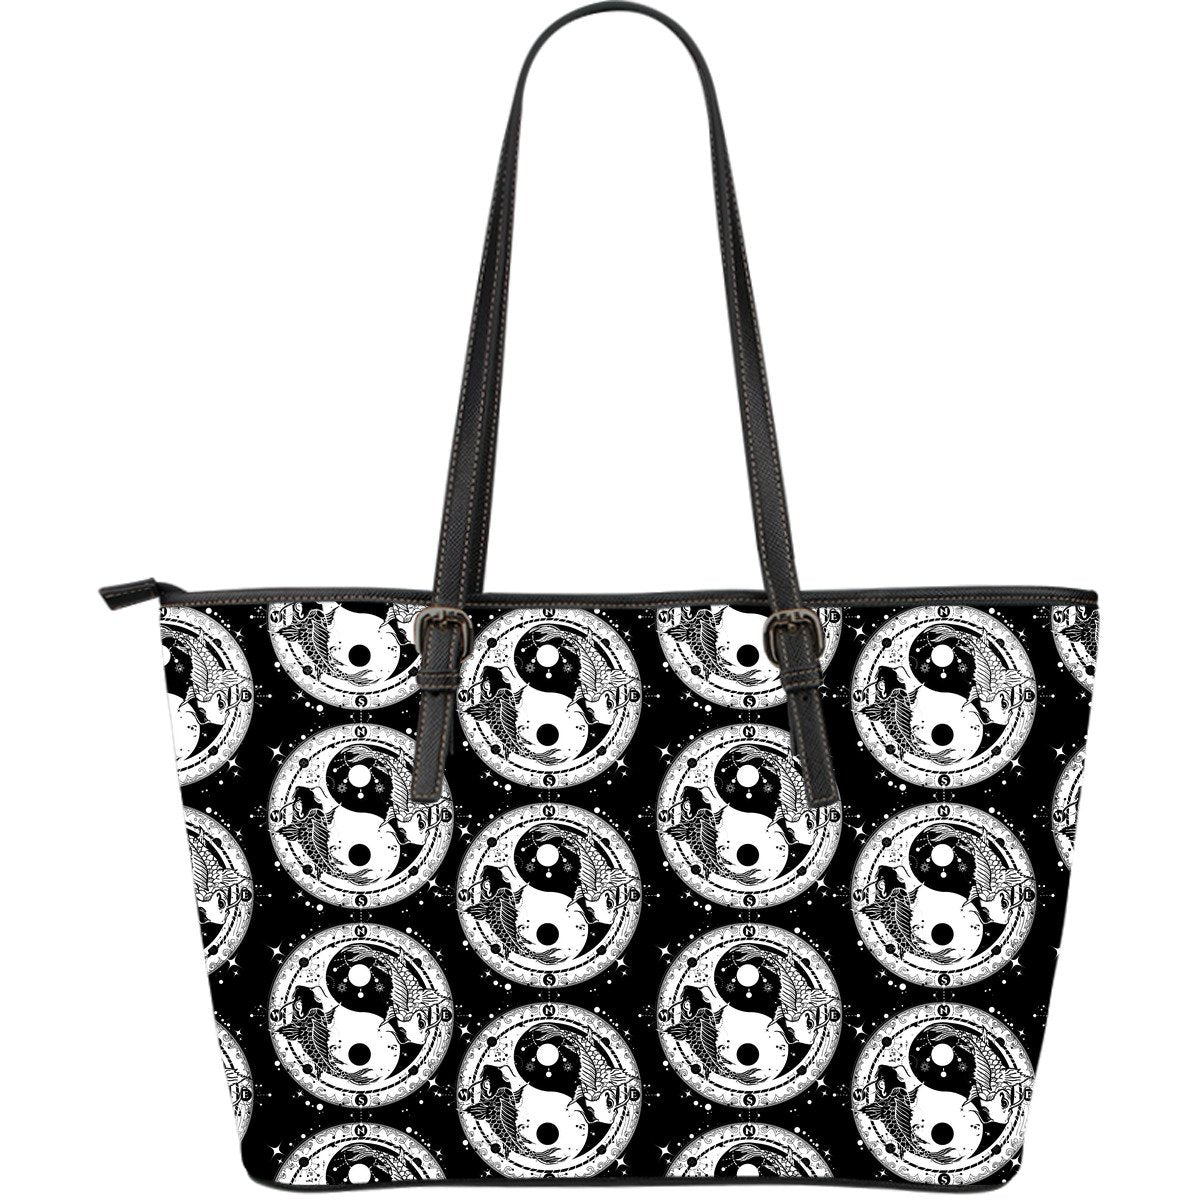 Yin Yang Koi Fish Large Leather Tote Bag